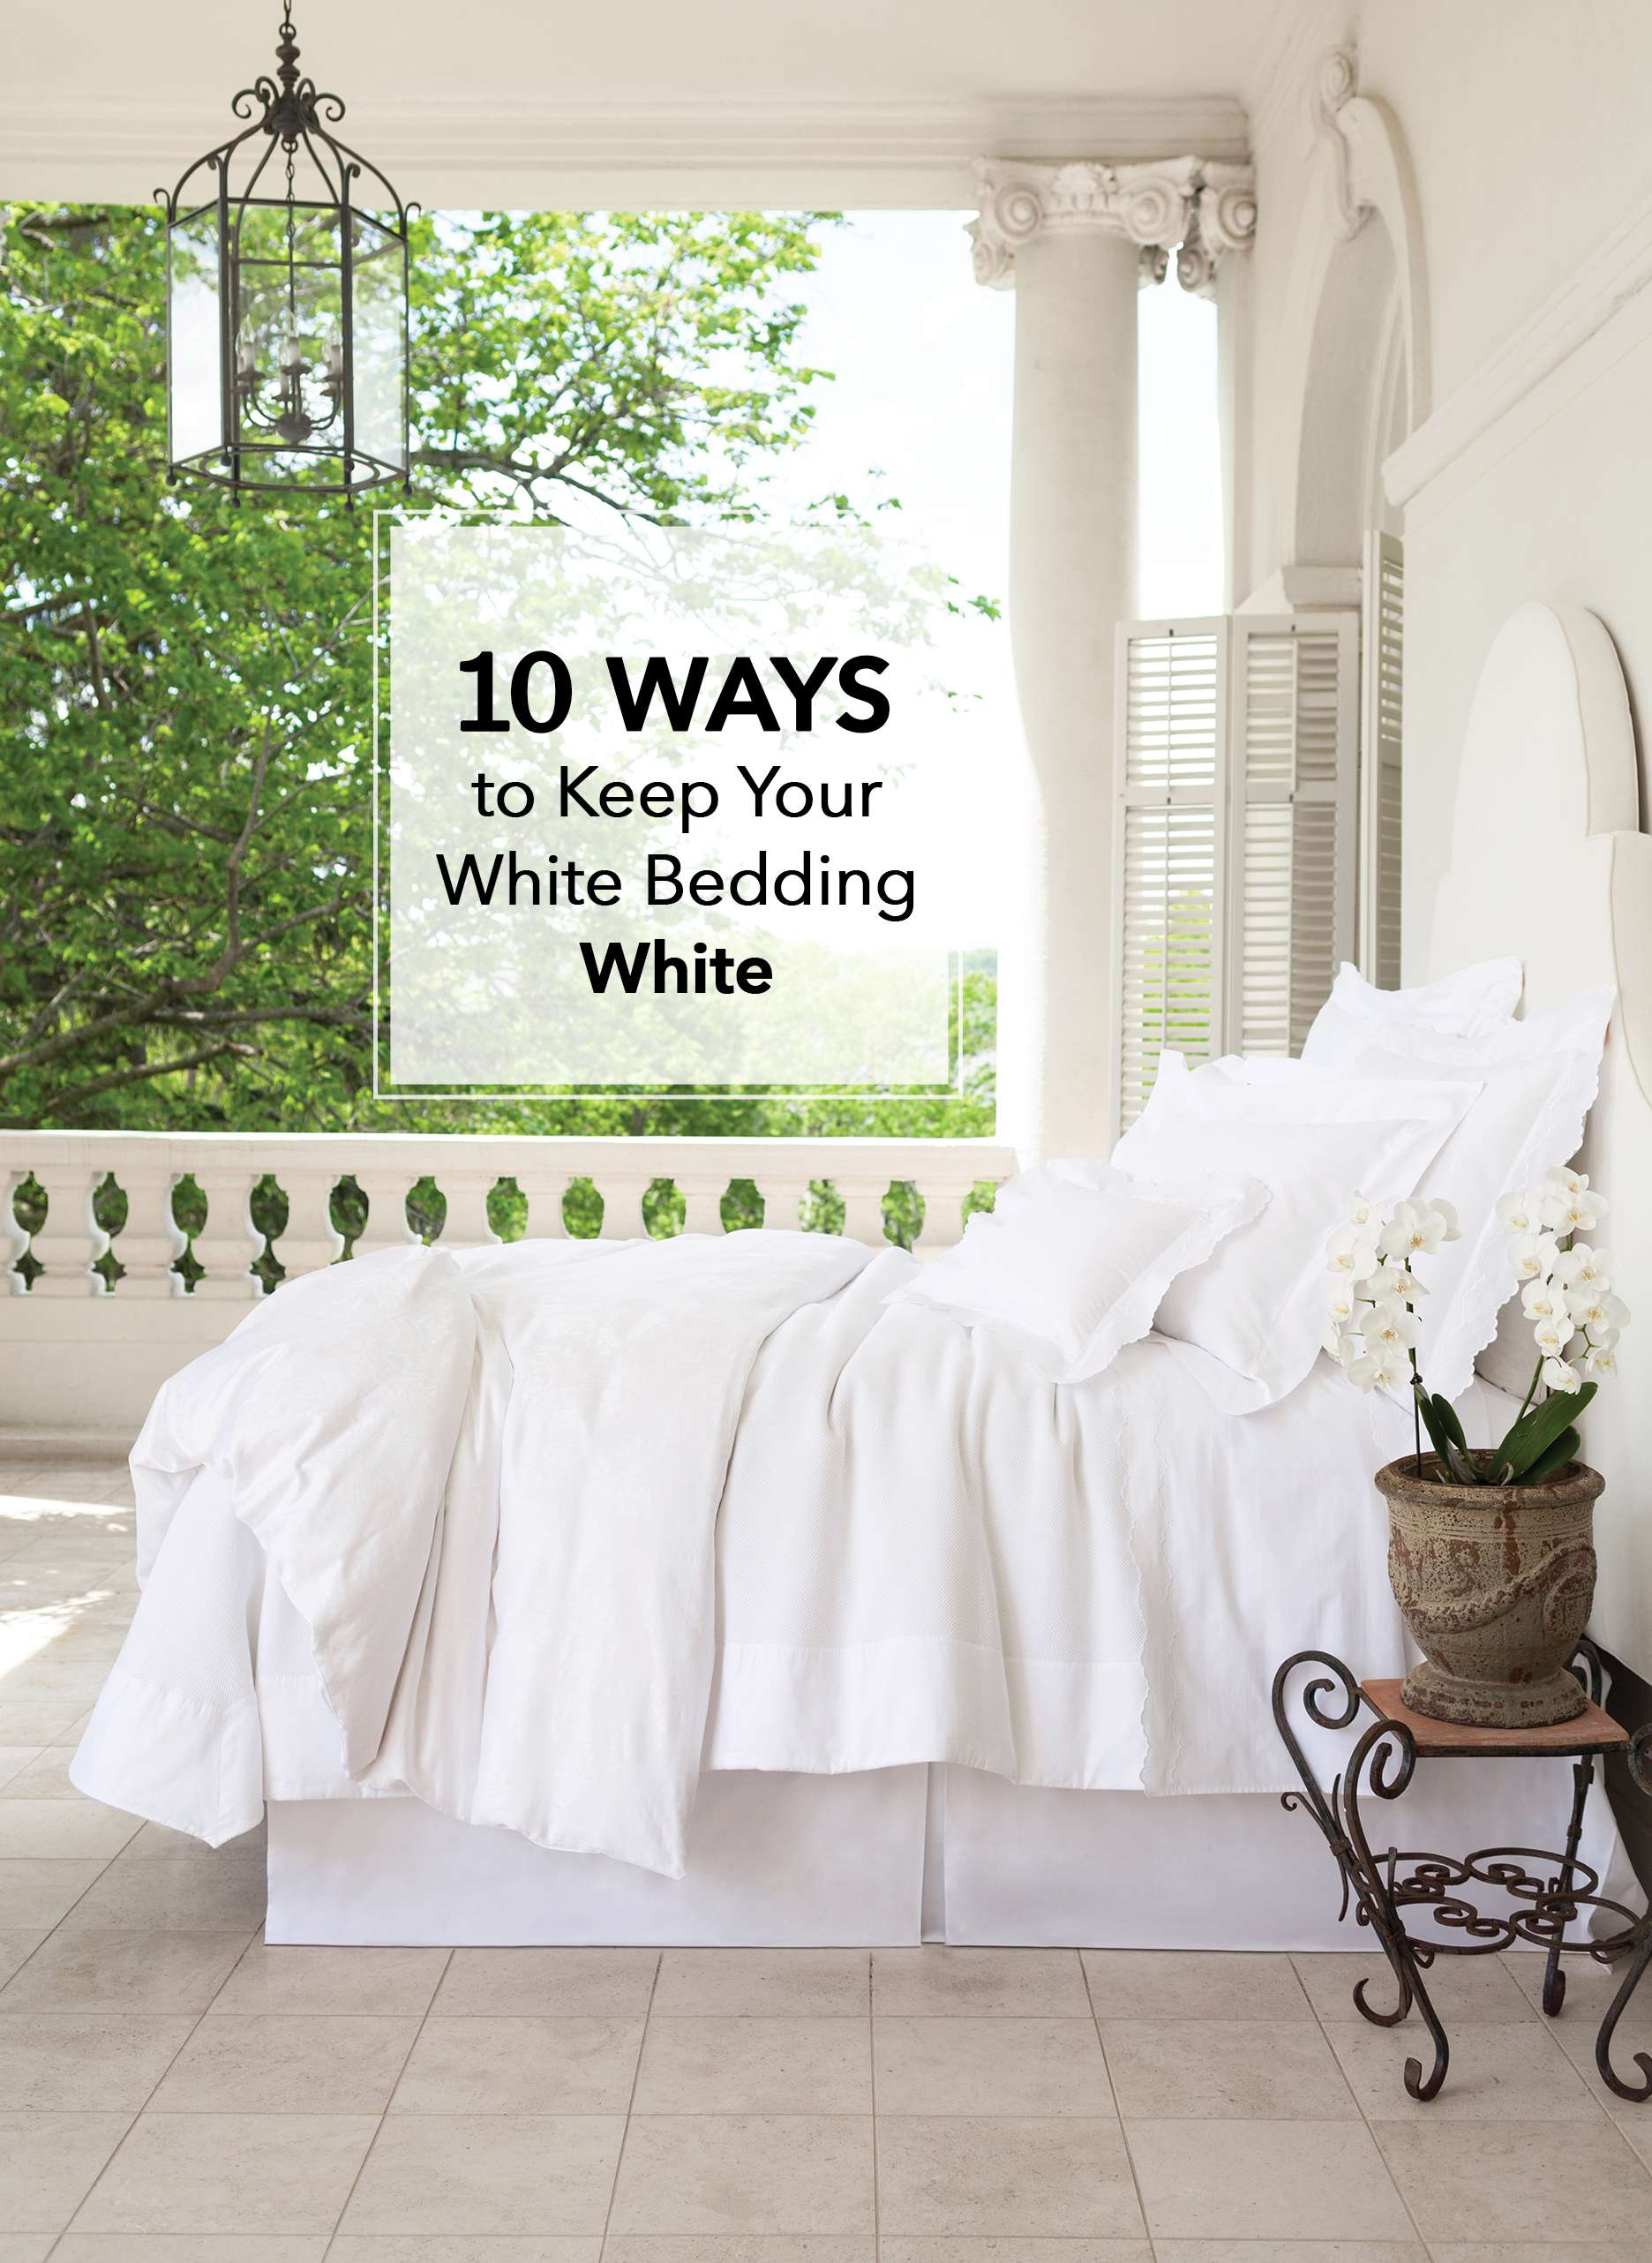 Beducation 101: 10 Ways To Keep Your White Bedding White